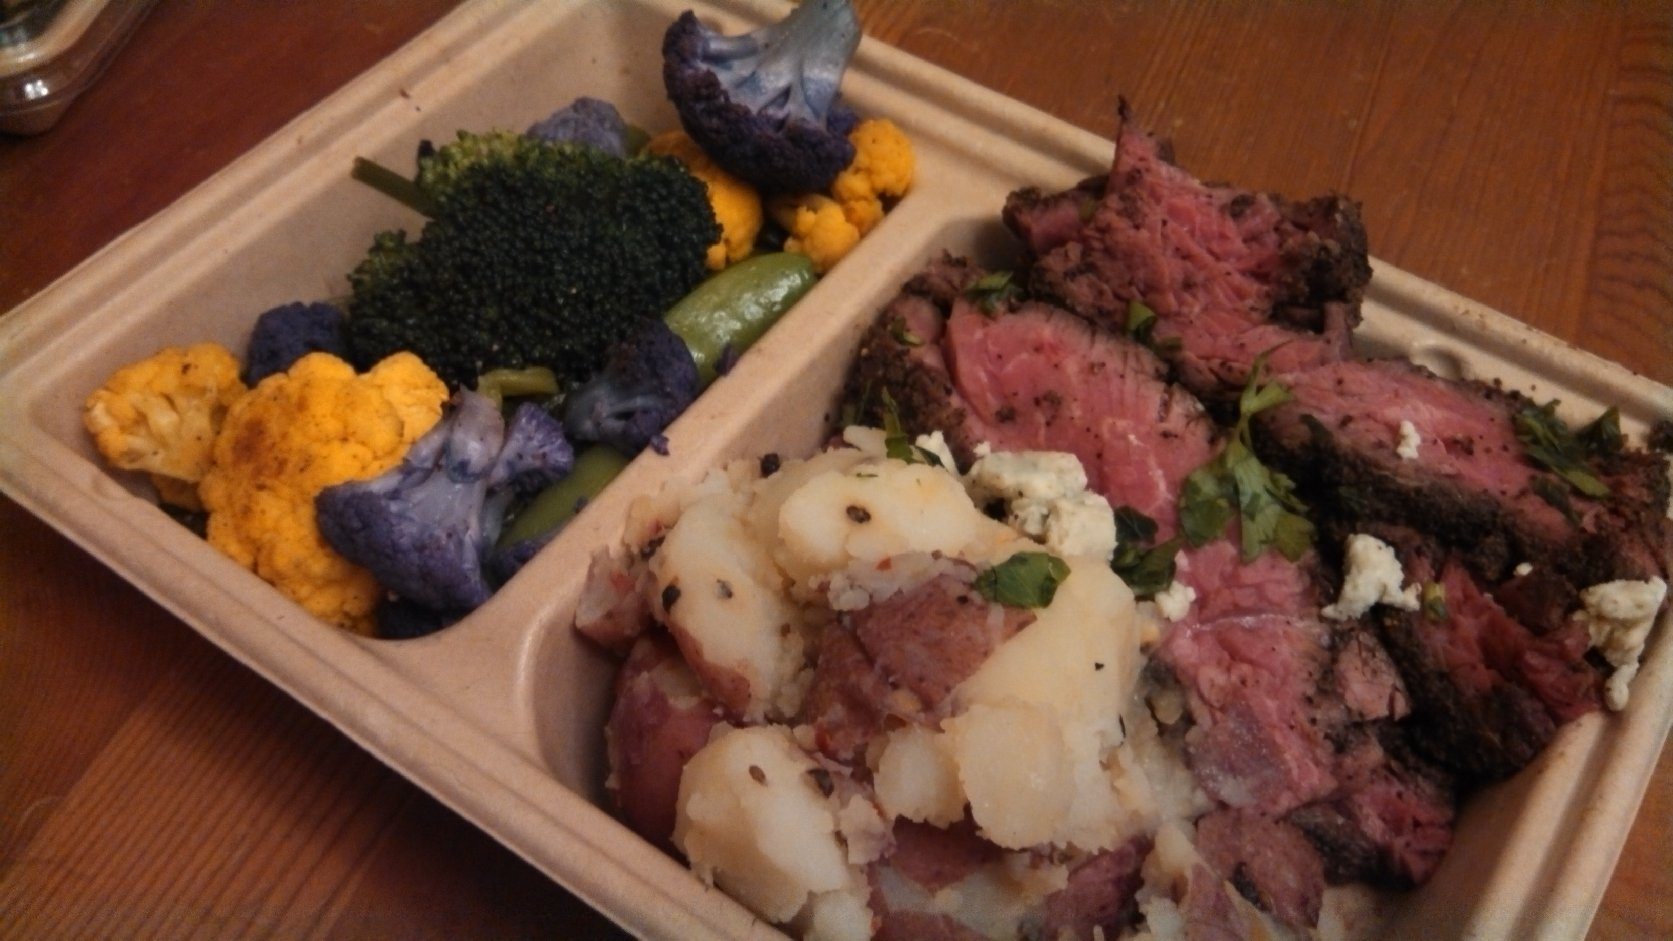 The steak and potatoes didn't look like much in its tray. Photo: Kelly O'Mara